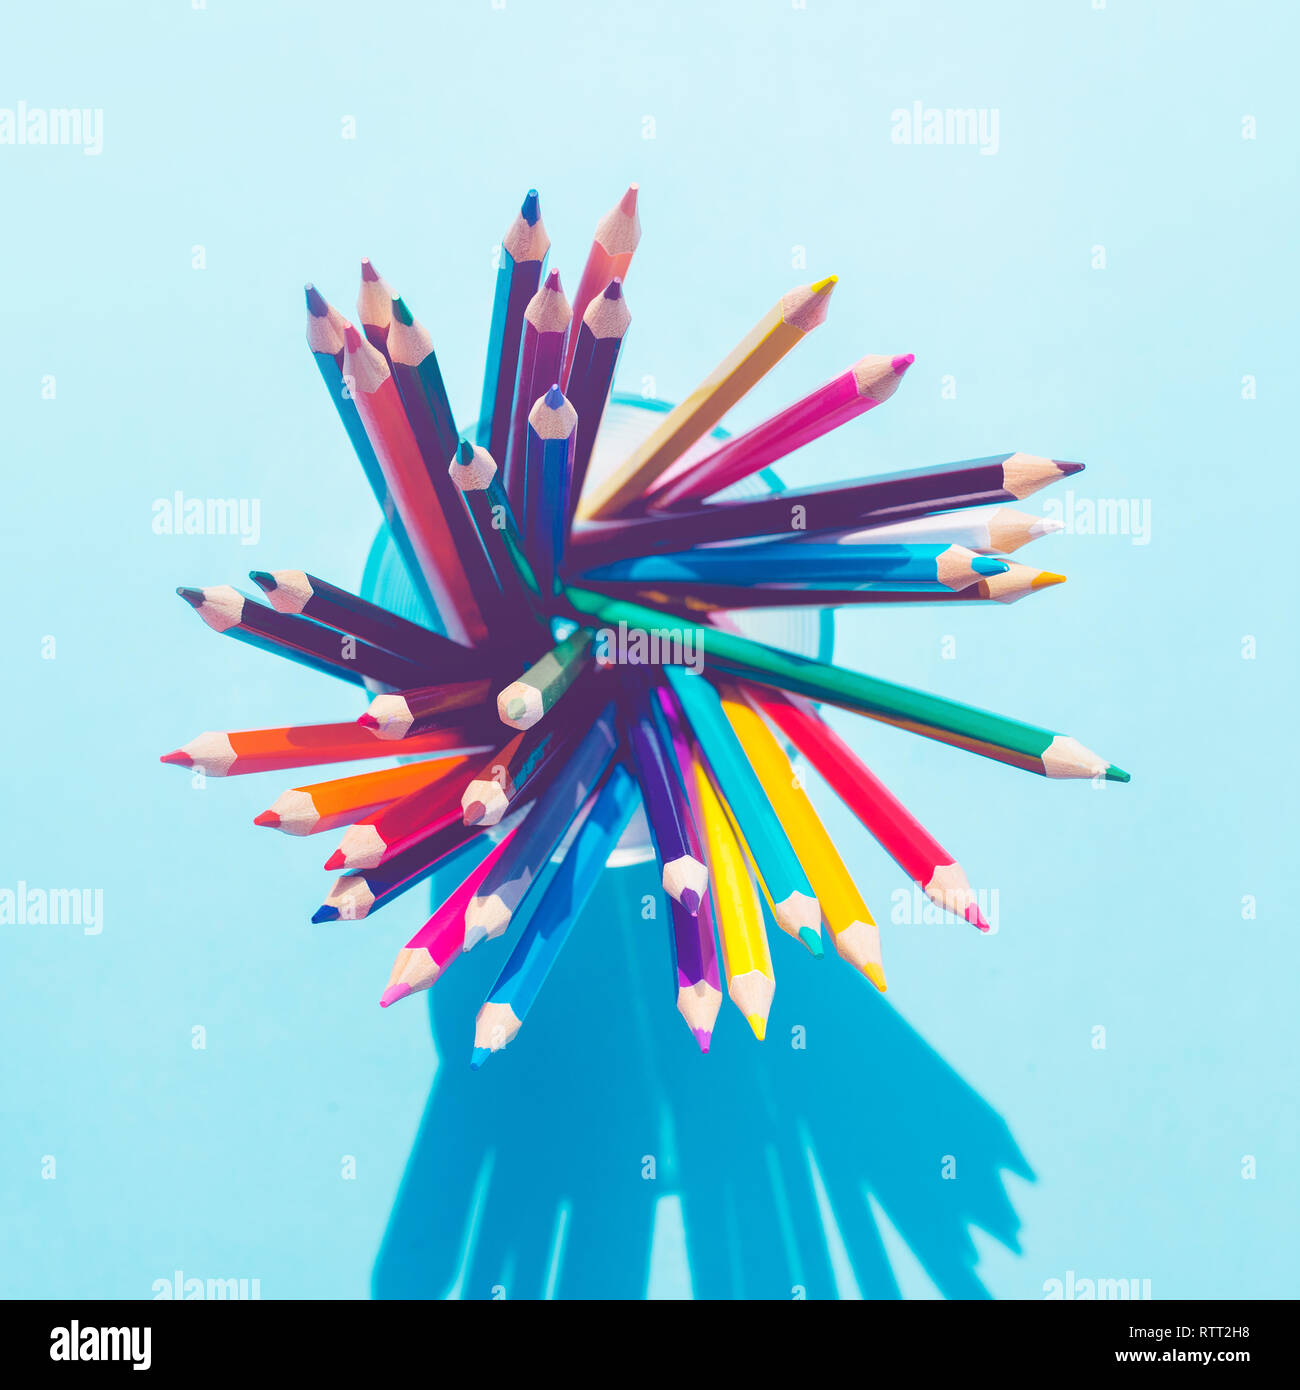 Top view of colorful pencil in glass with long shadow on pastel background.business creativity concept ideas - Stock Image